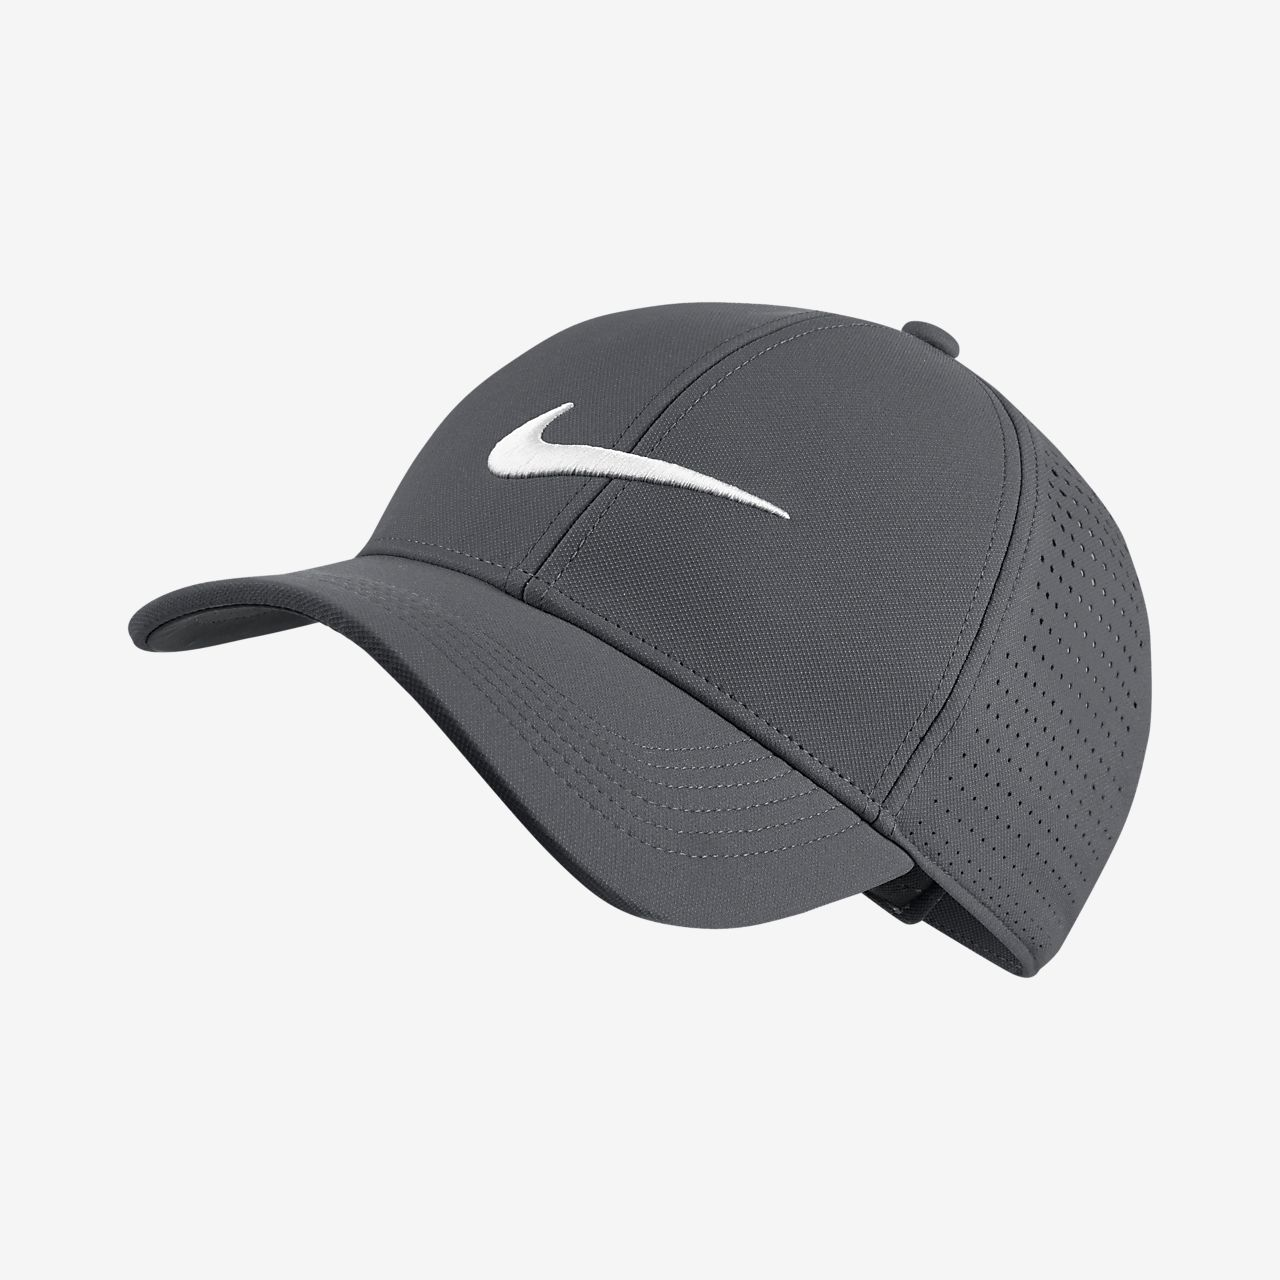 4b1799b764b Nike Legacy 91 Perforated Adjustable Golf Hat. Nike.com